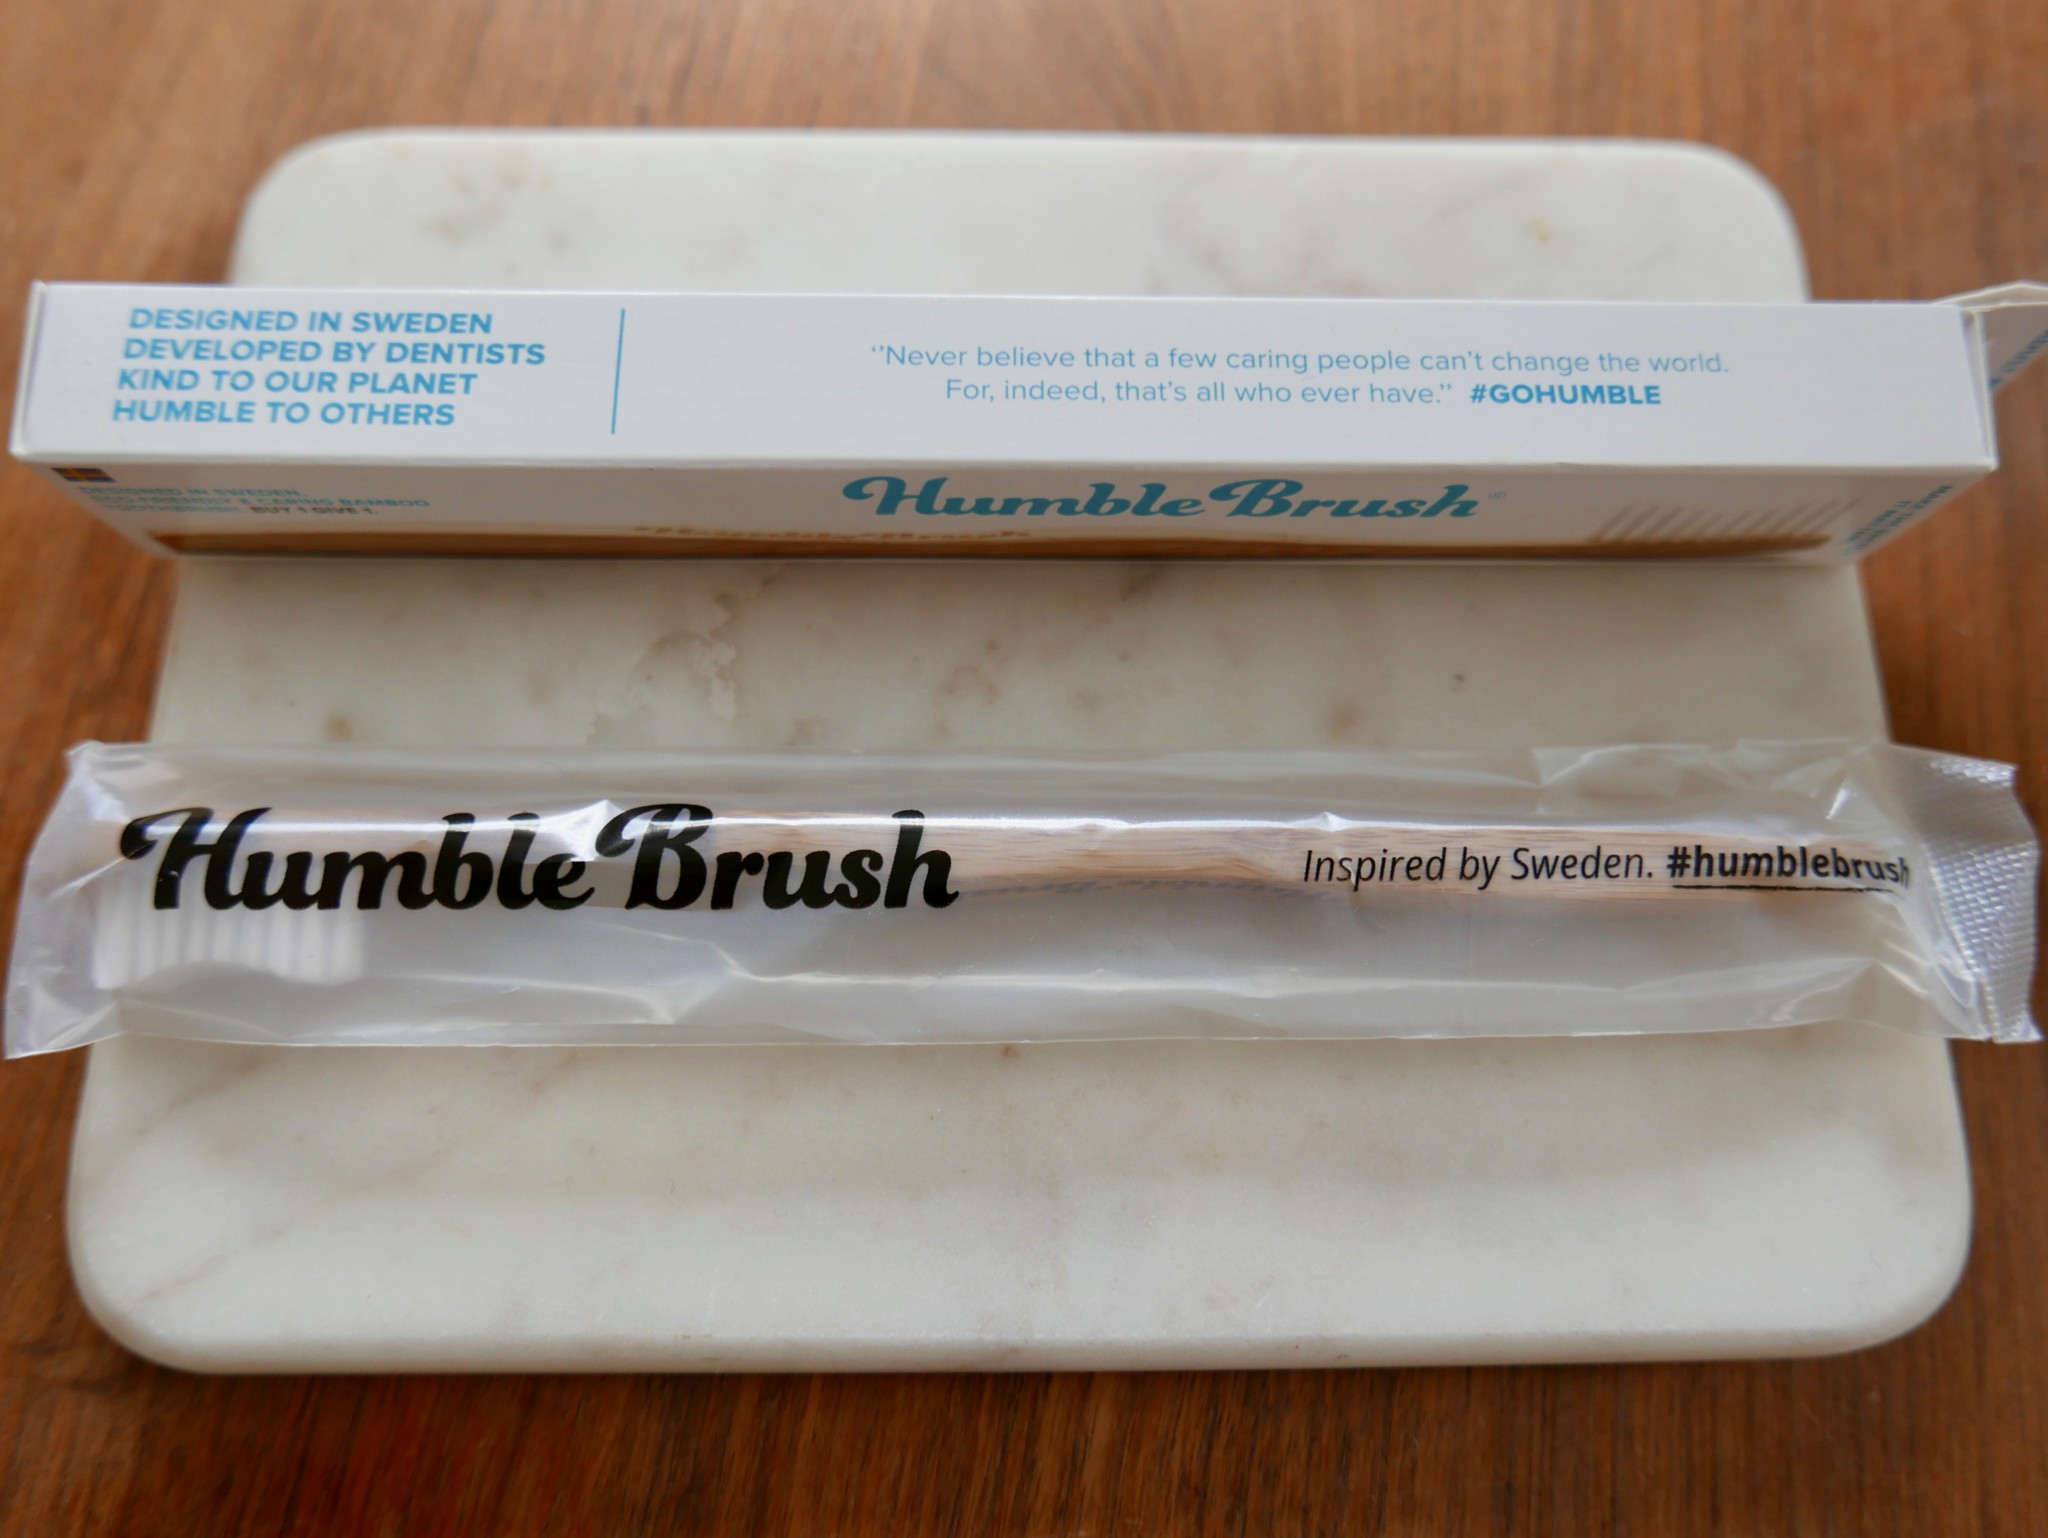 humble-brush-sweden-bambus-anja-stang